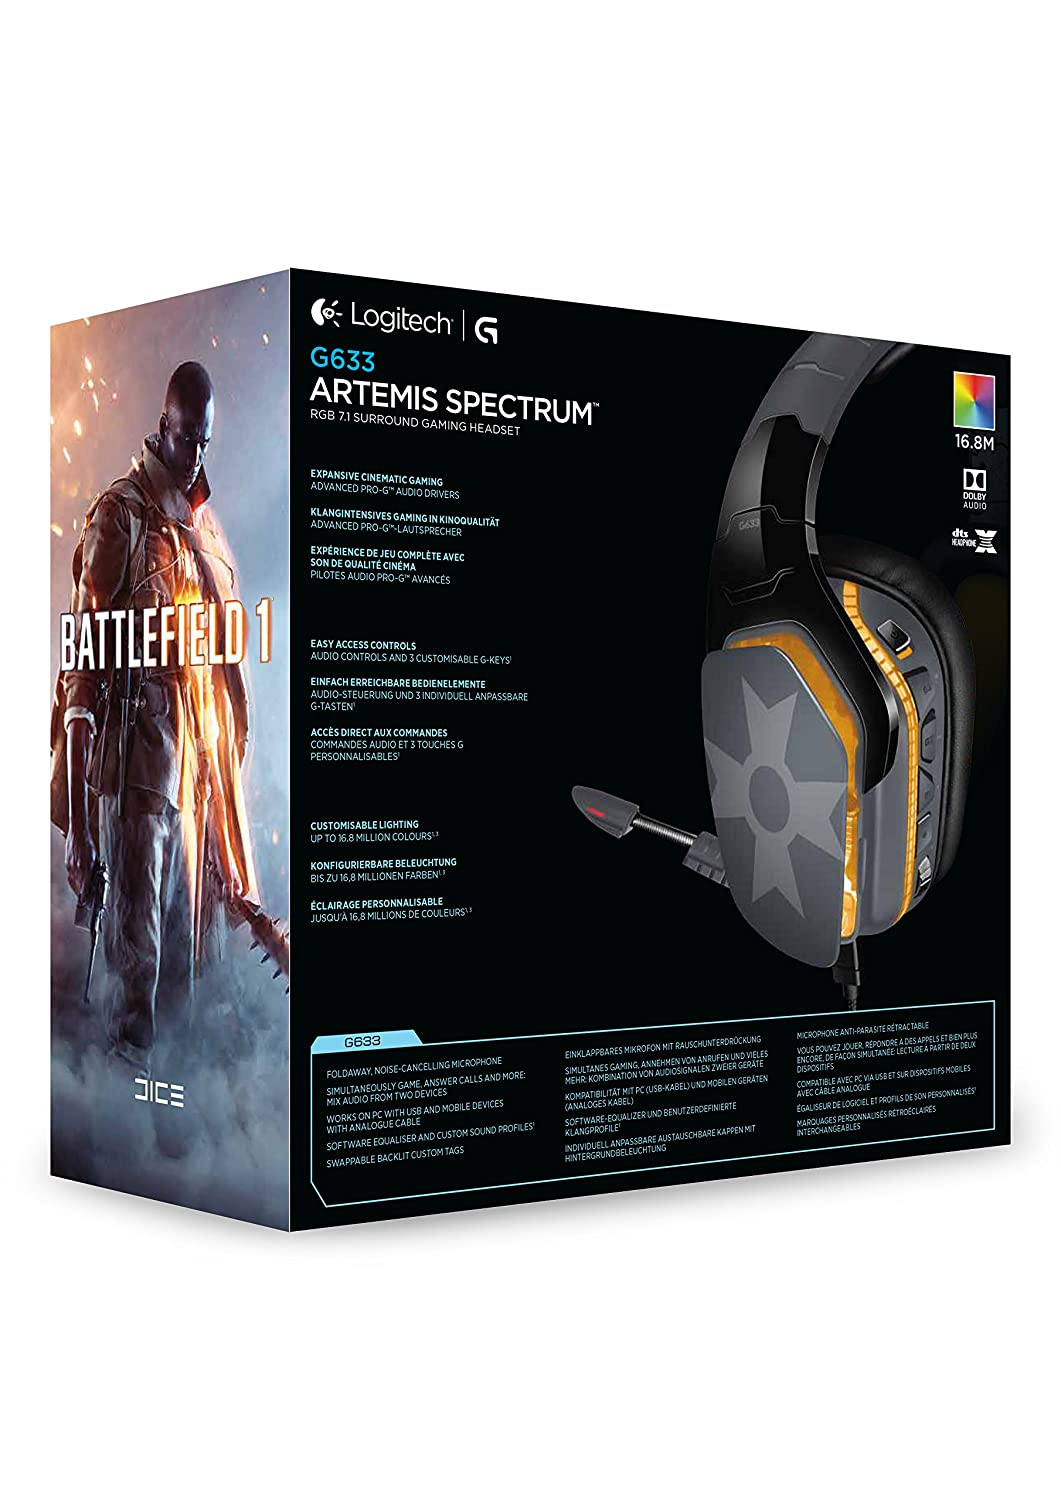 Logitech G633 Artemis Spectrum Rgb 7 1 Dolby And Dts Headphonex Surround Sound Gaming Headset Amazon In Computers Accessories